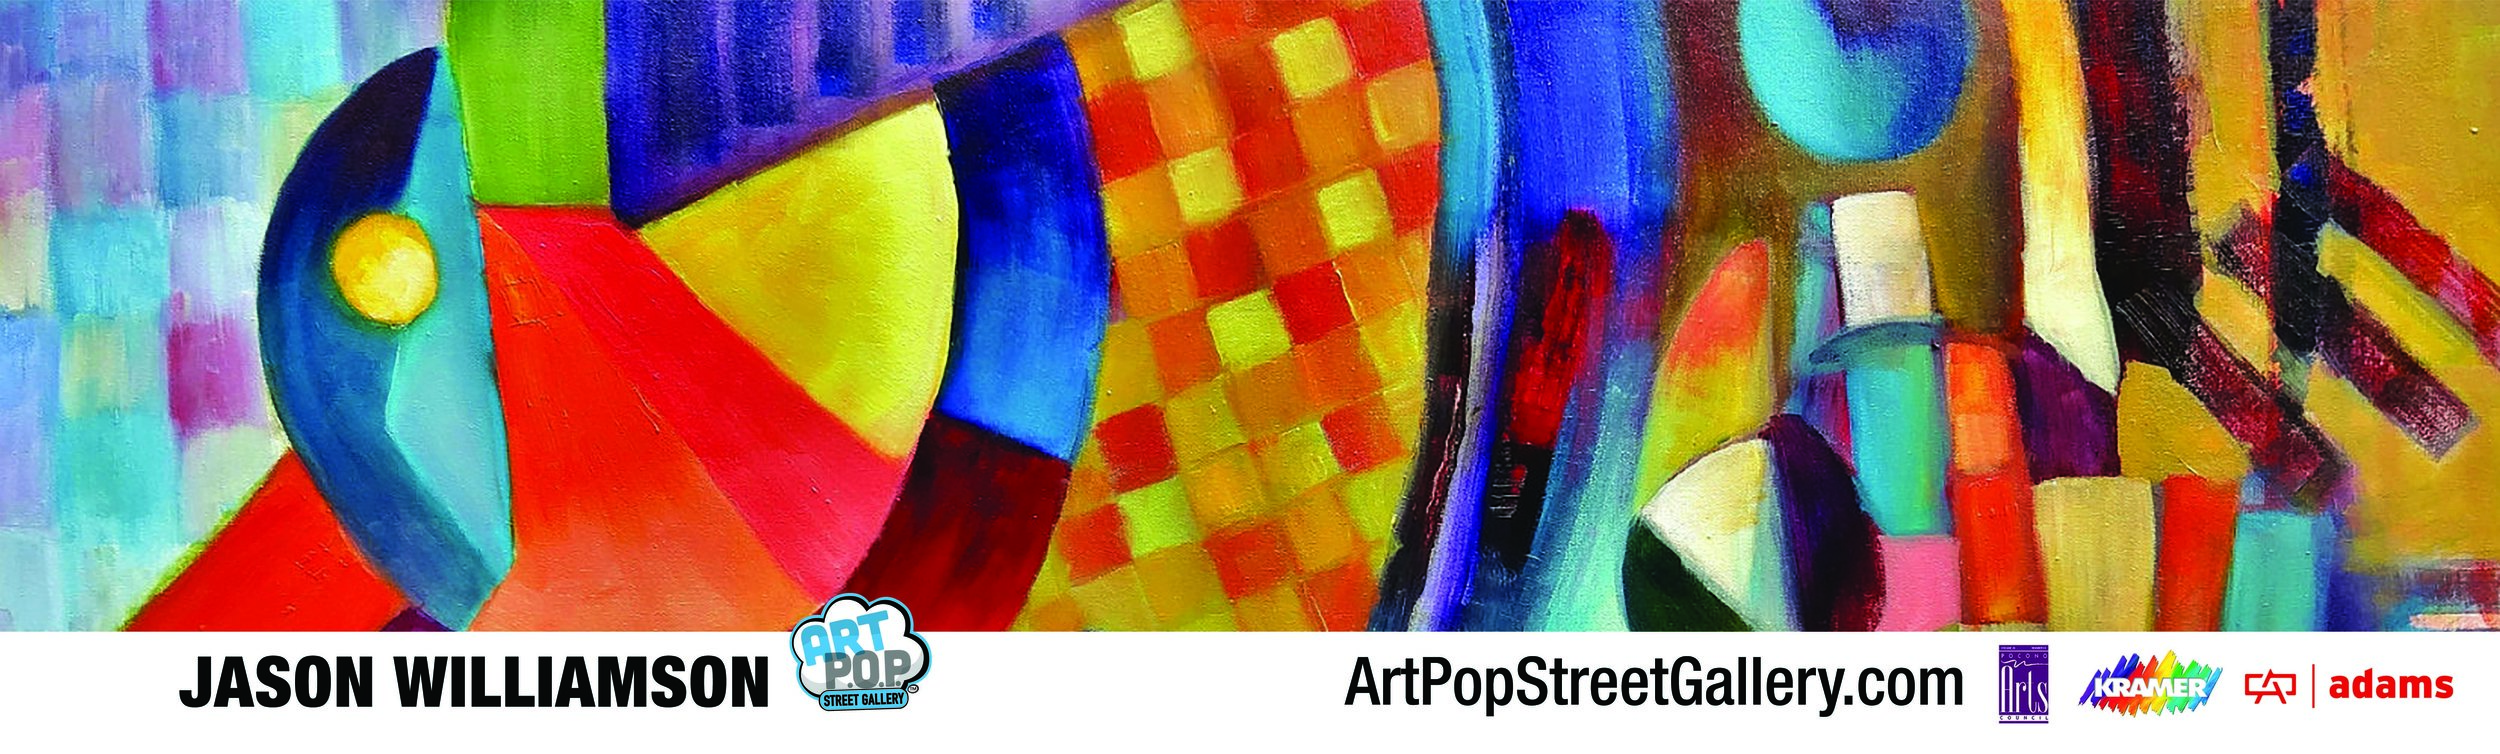 To contact the artist, please email: jasonwilliamsonfineart@aol.com